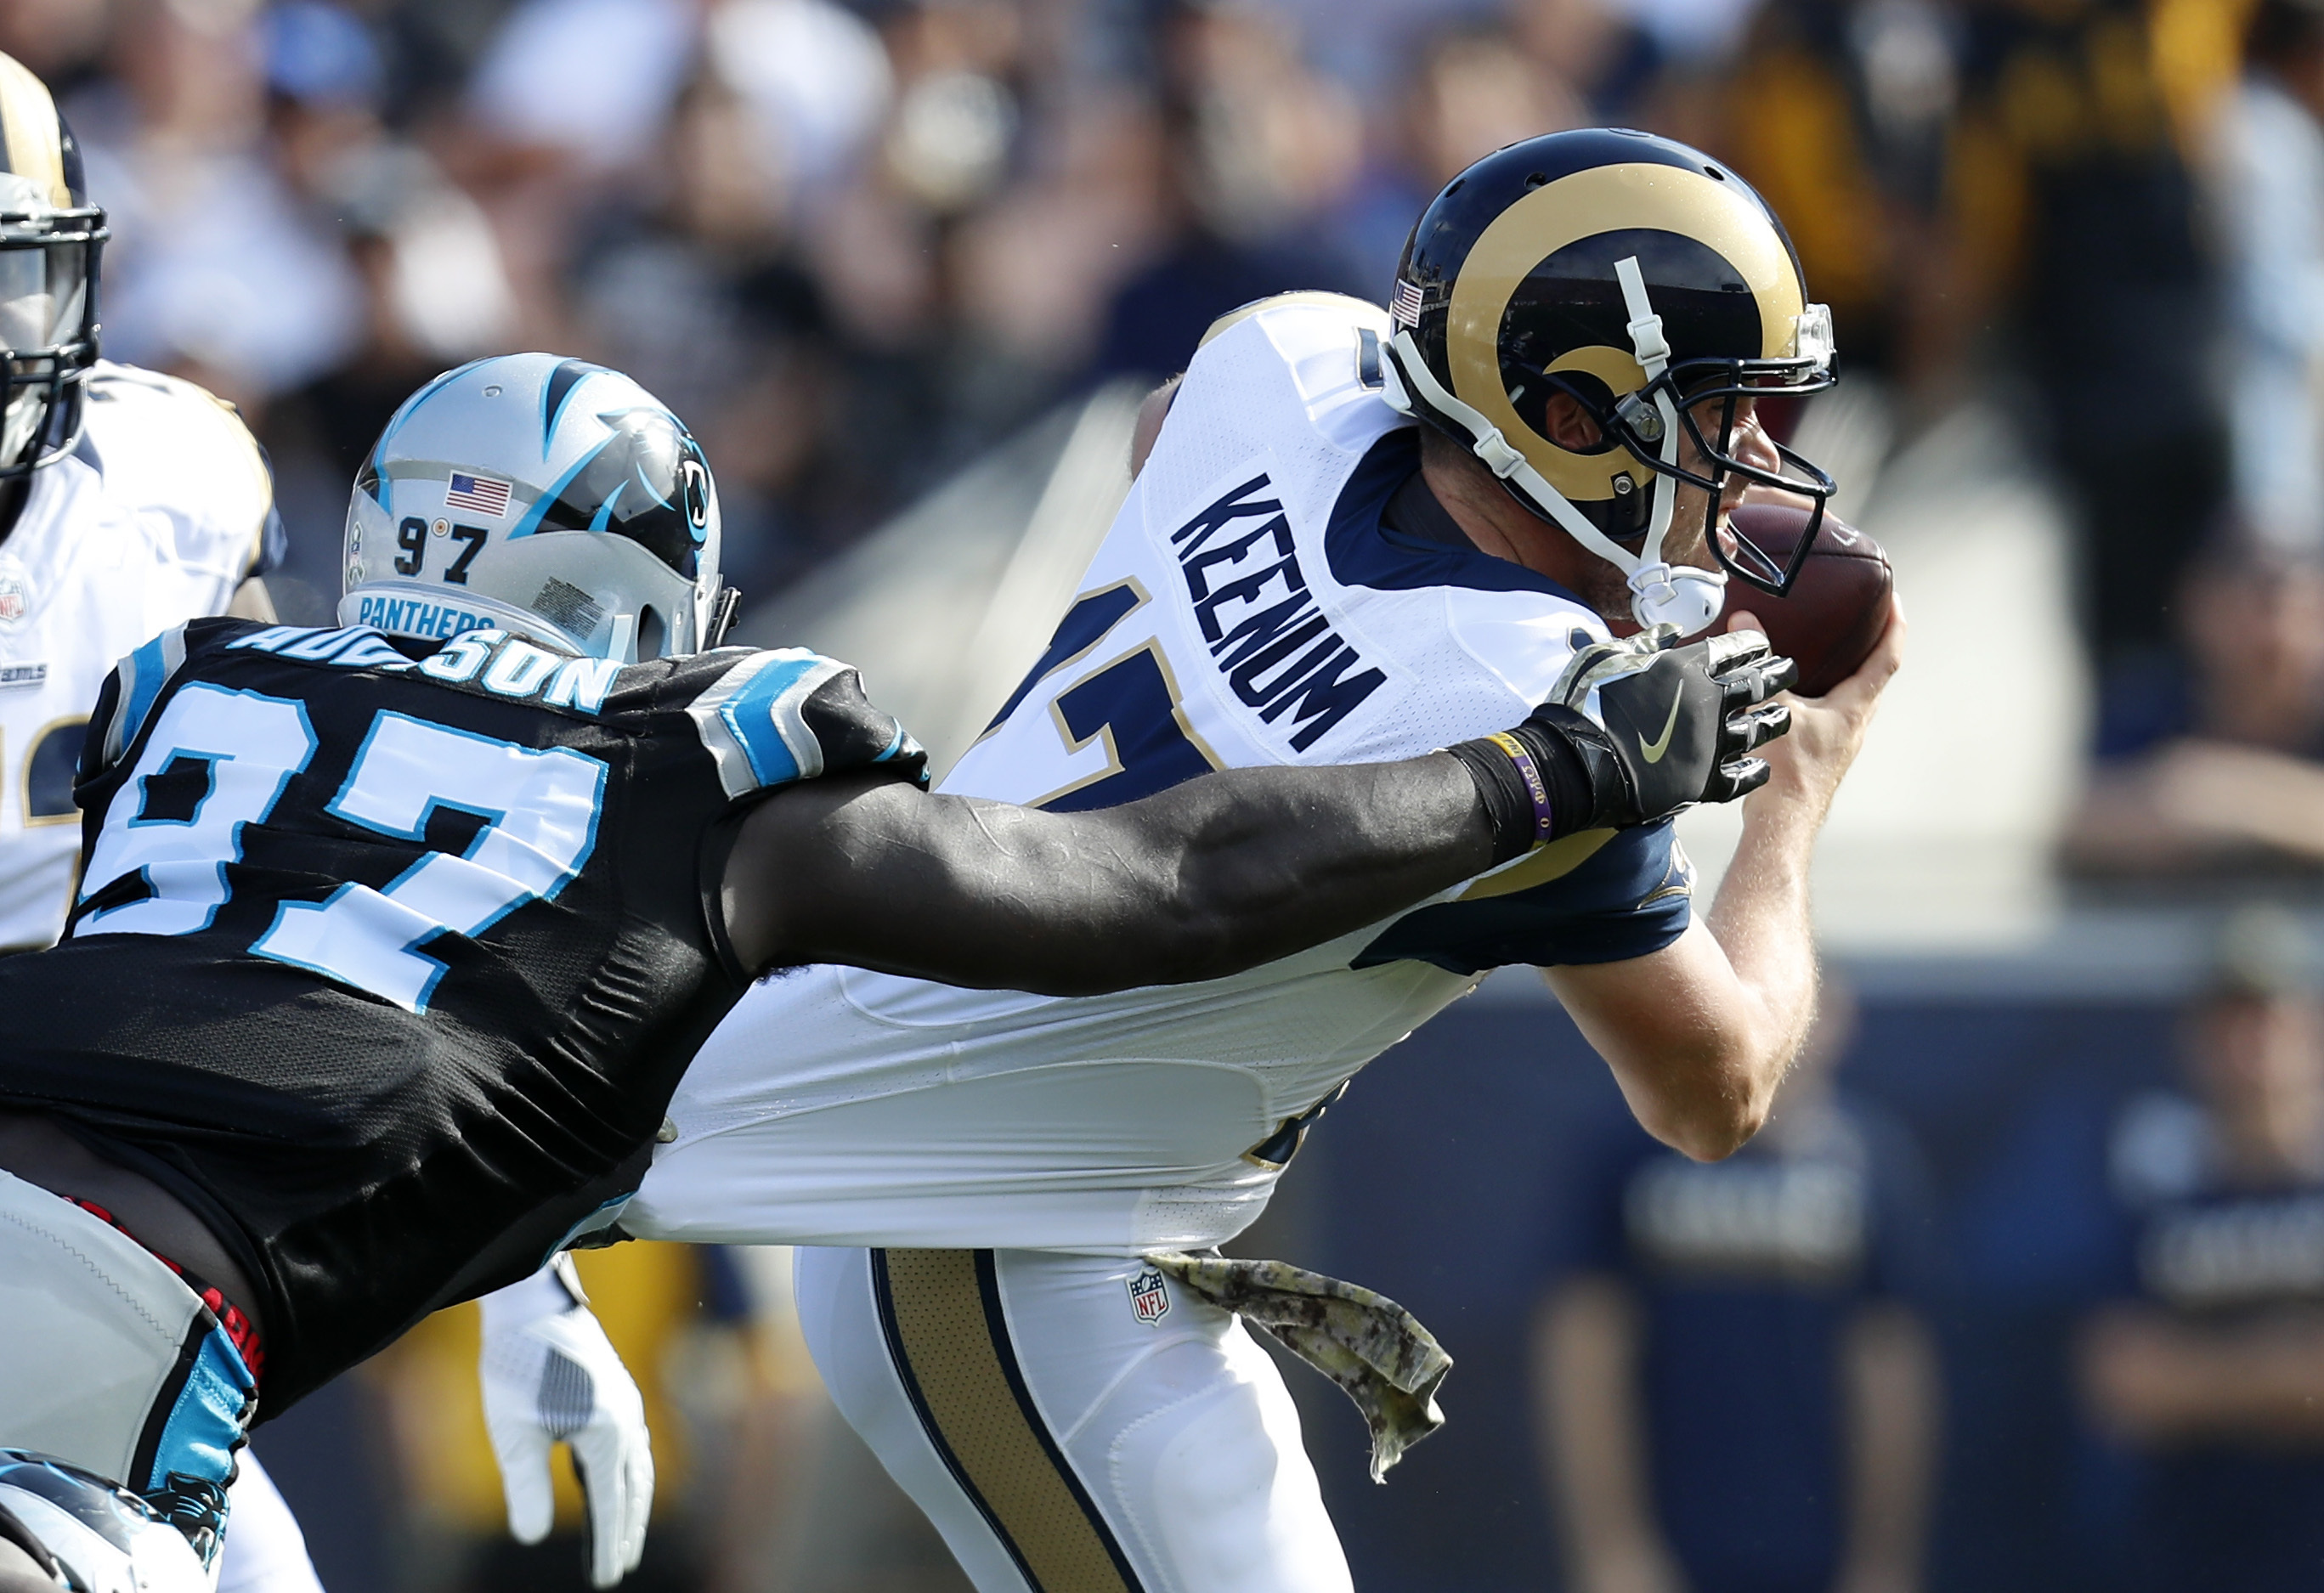 Los Angeles Rams quarterback Case Keenum, right, is sacked by Carolina Panthers defensive end Mario Addison during the first half of an NFL football game, Sunday, Nov. 6, 2016, in Los Angeles. (AP Photo/Ryan Kang)